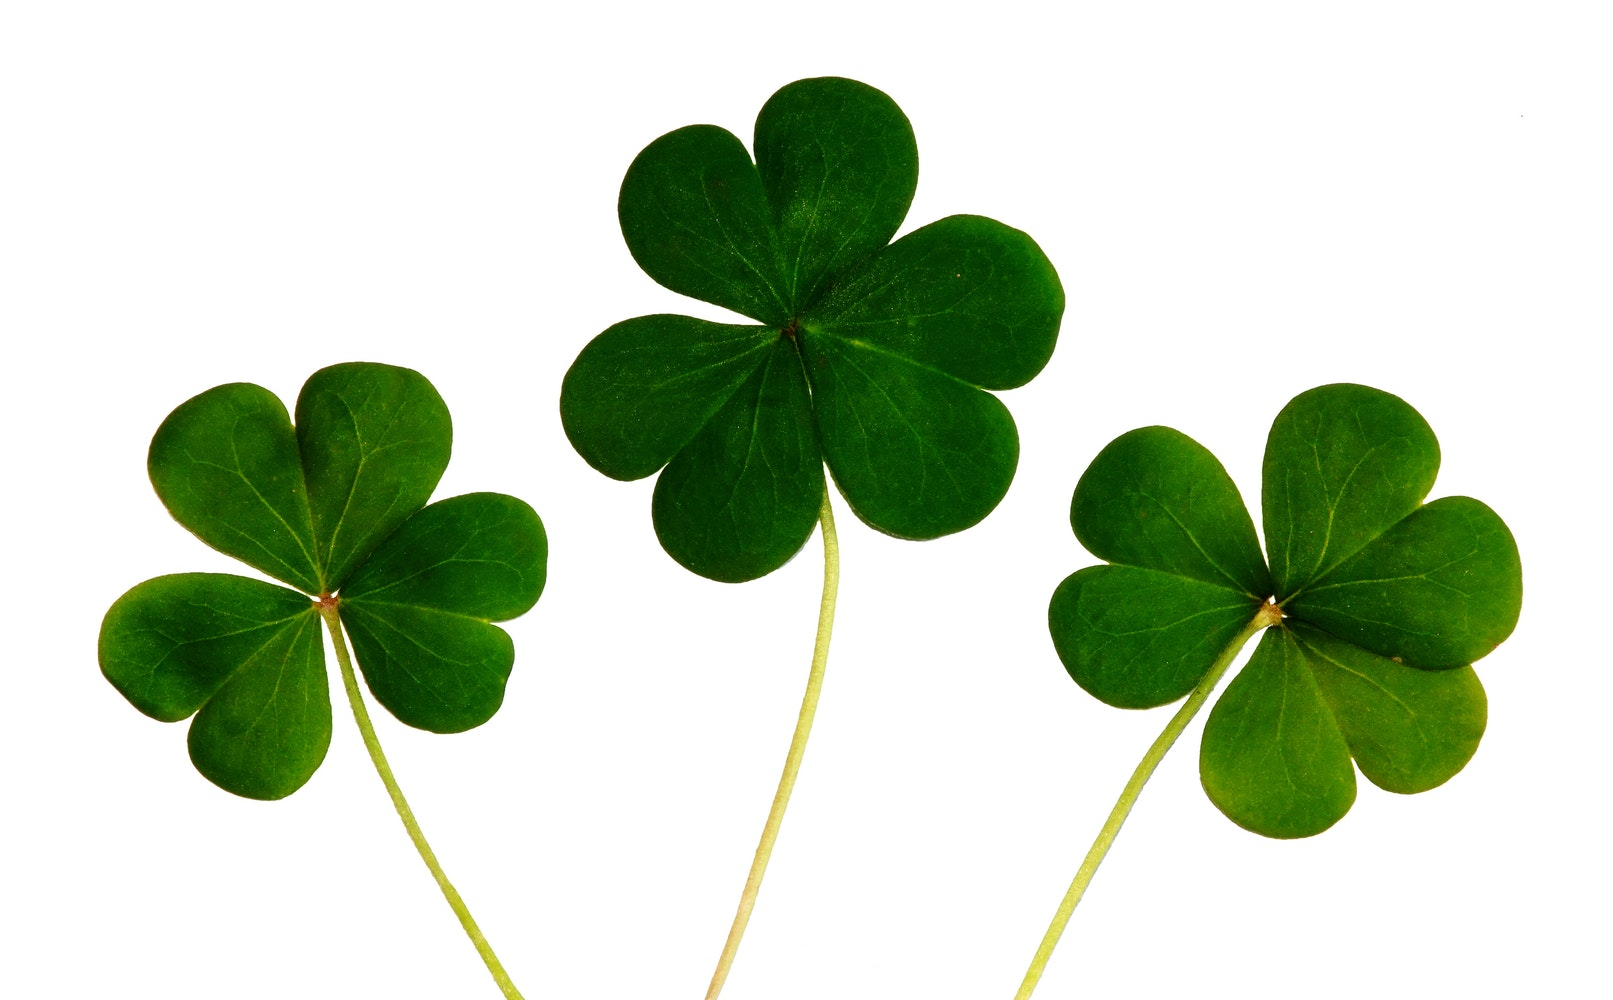 free stock photos of four leaf clover pexels